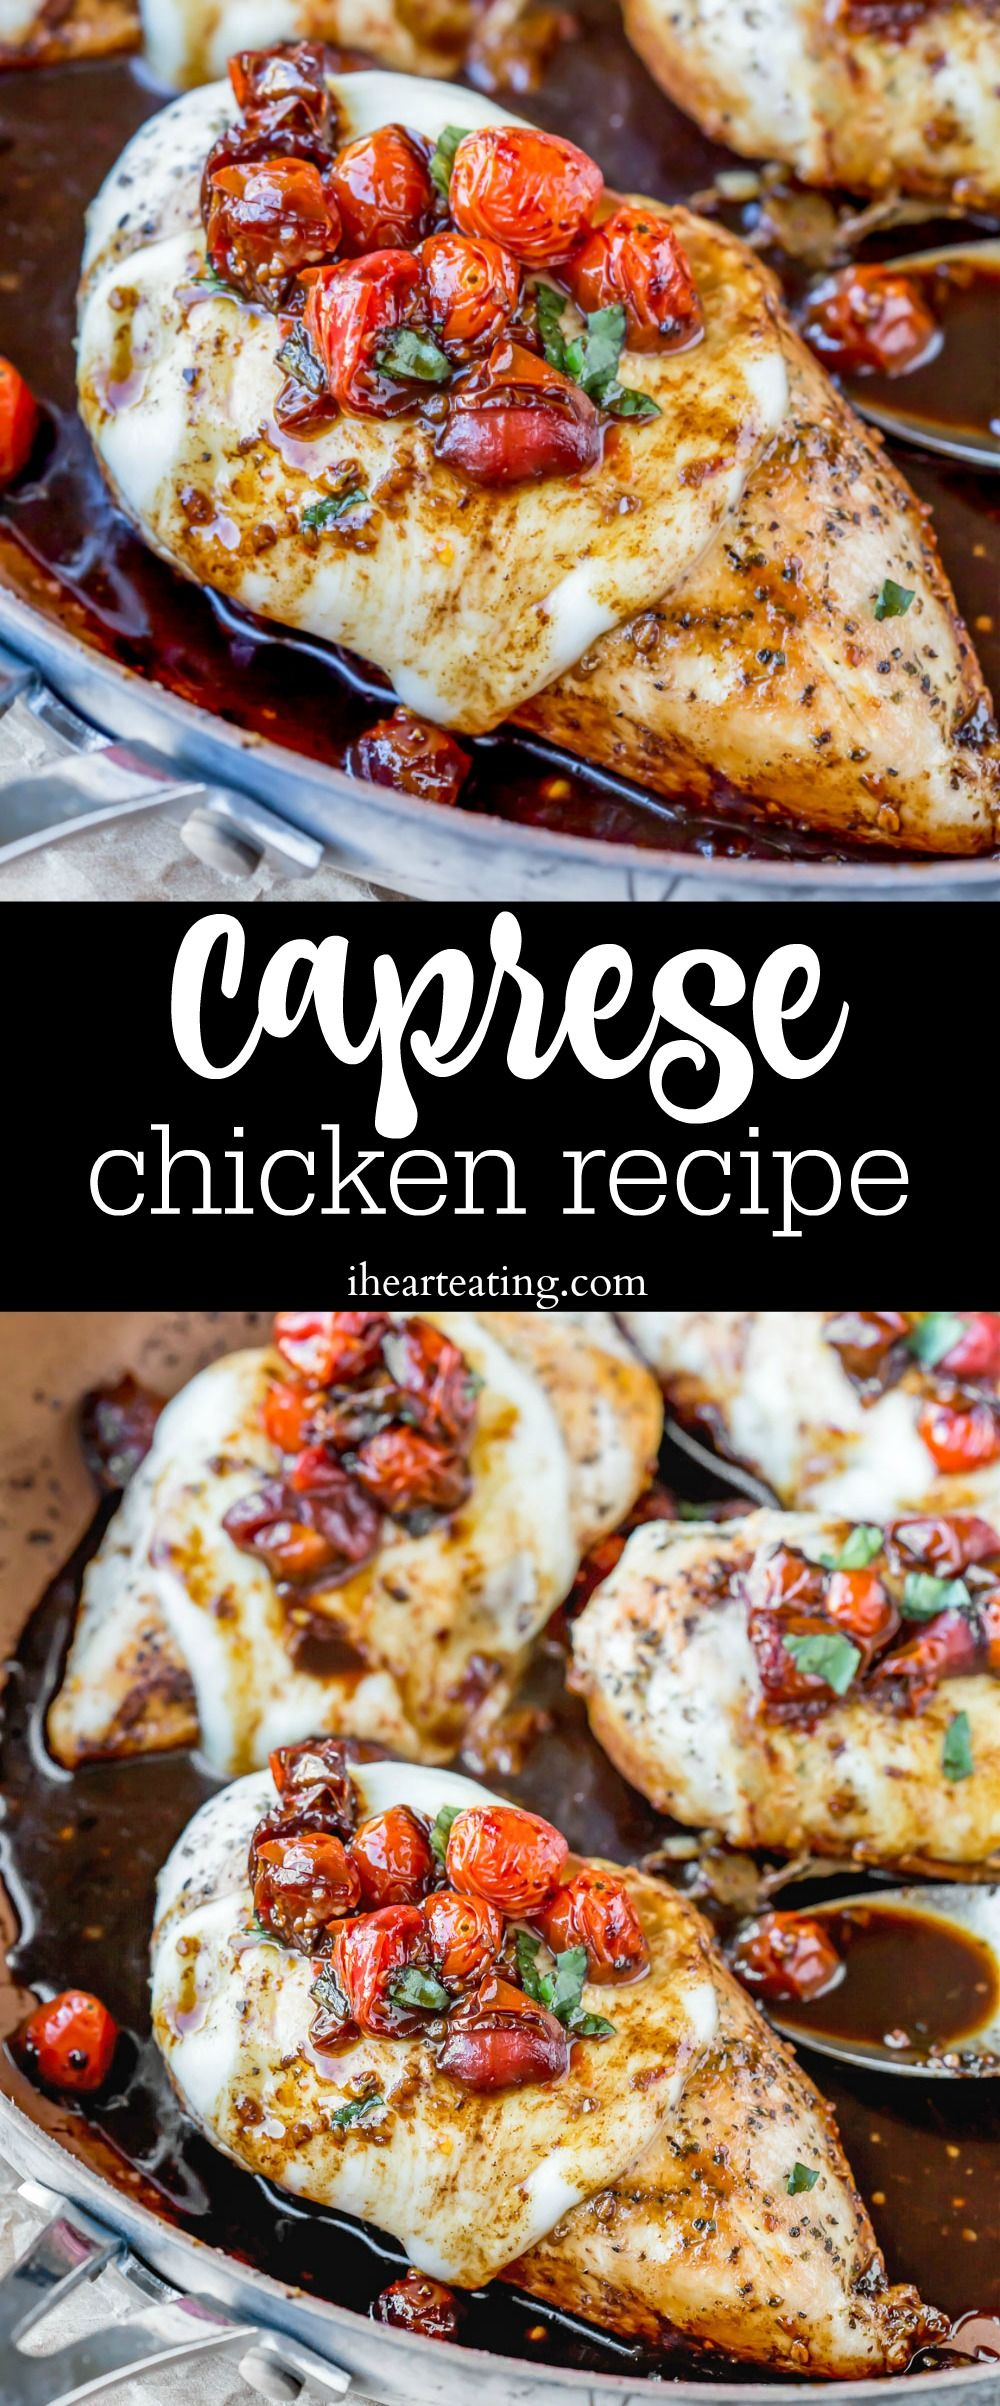 caprese chicken recipe is an easy dinner recipe that turns boneless